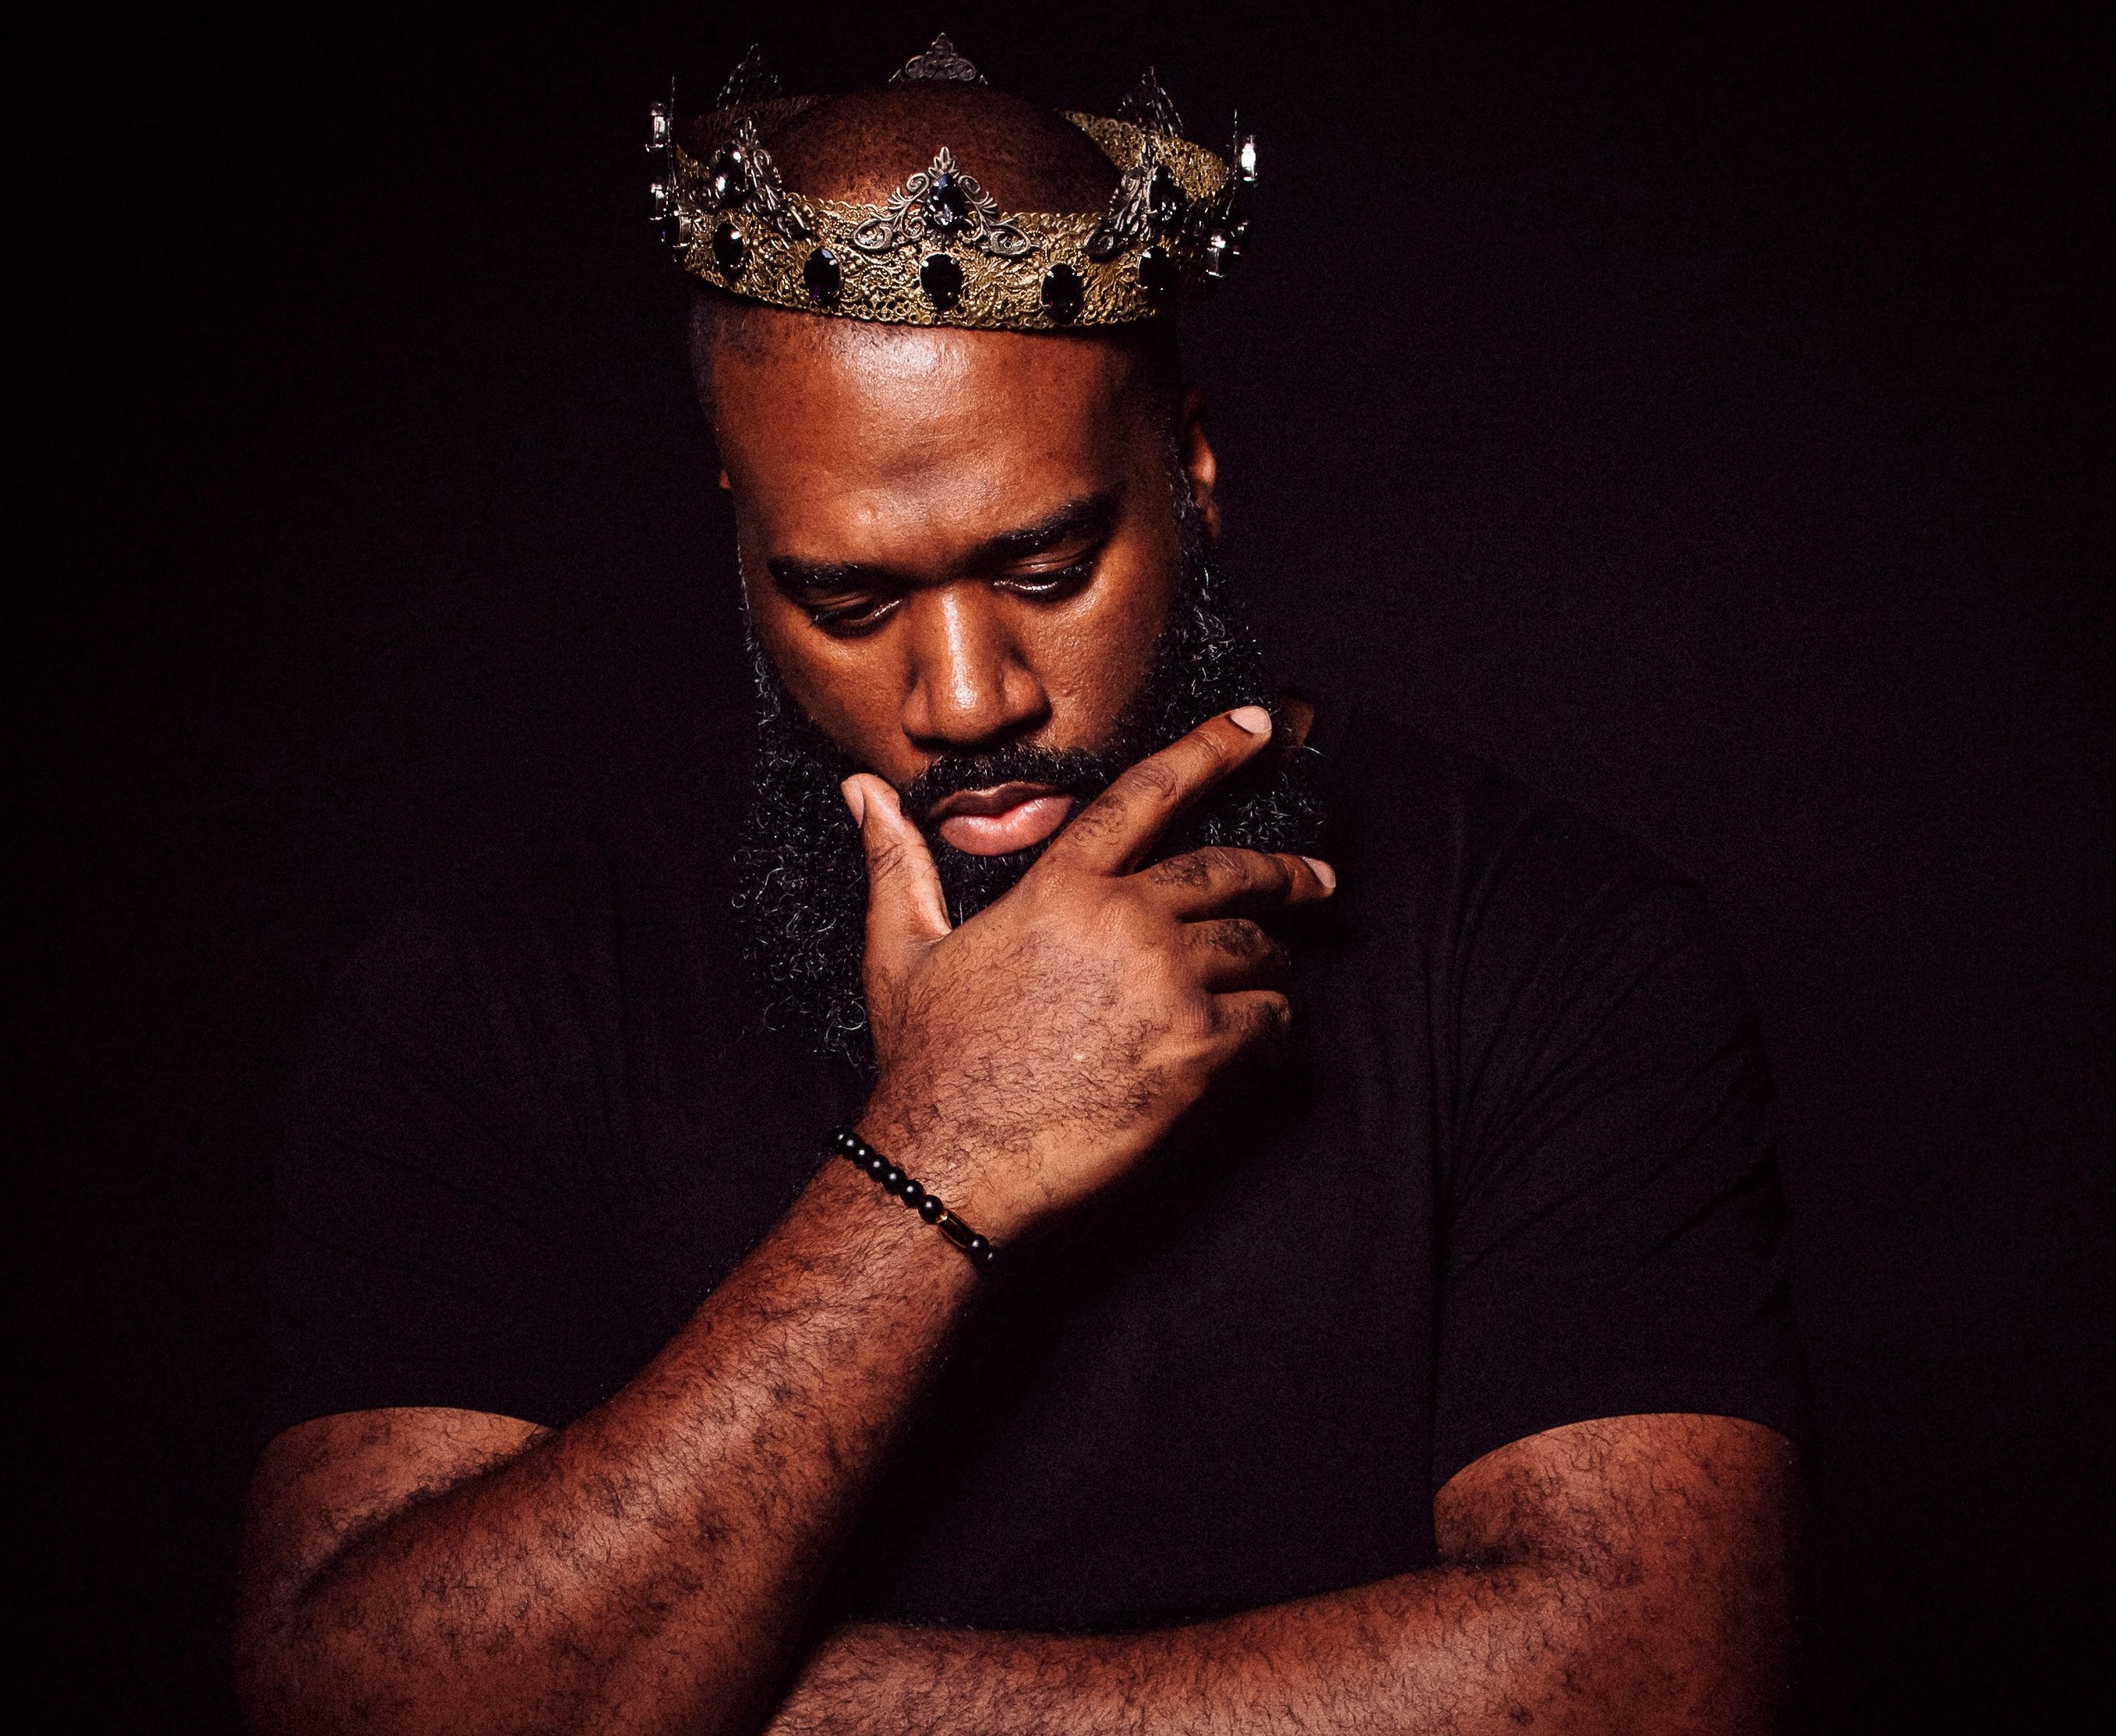 Next wave Alabama musicians: A rapper who could be King